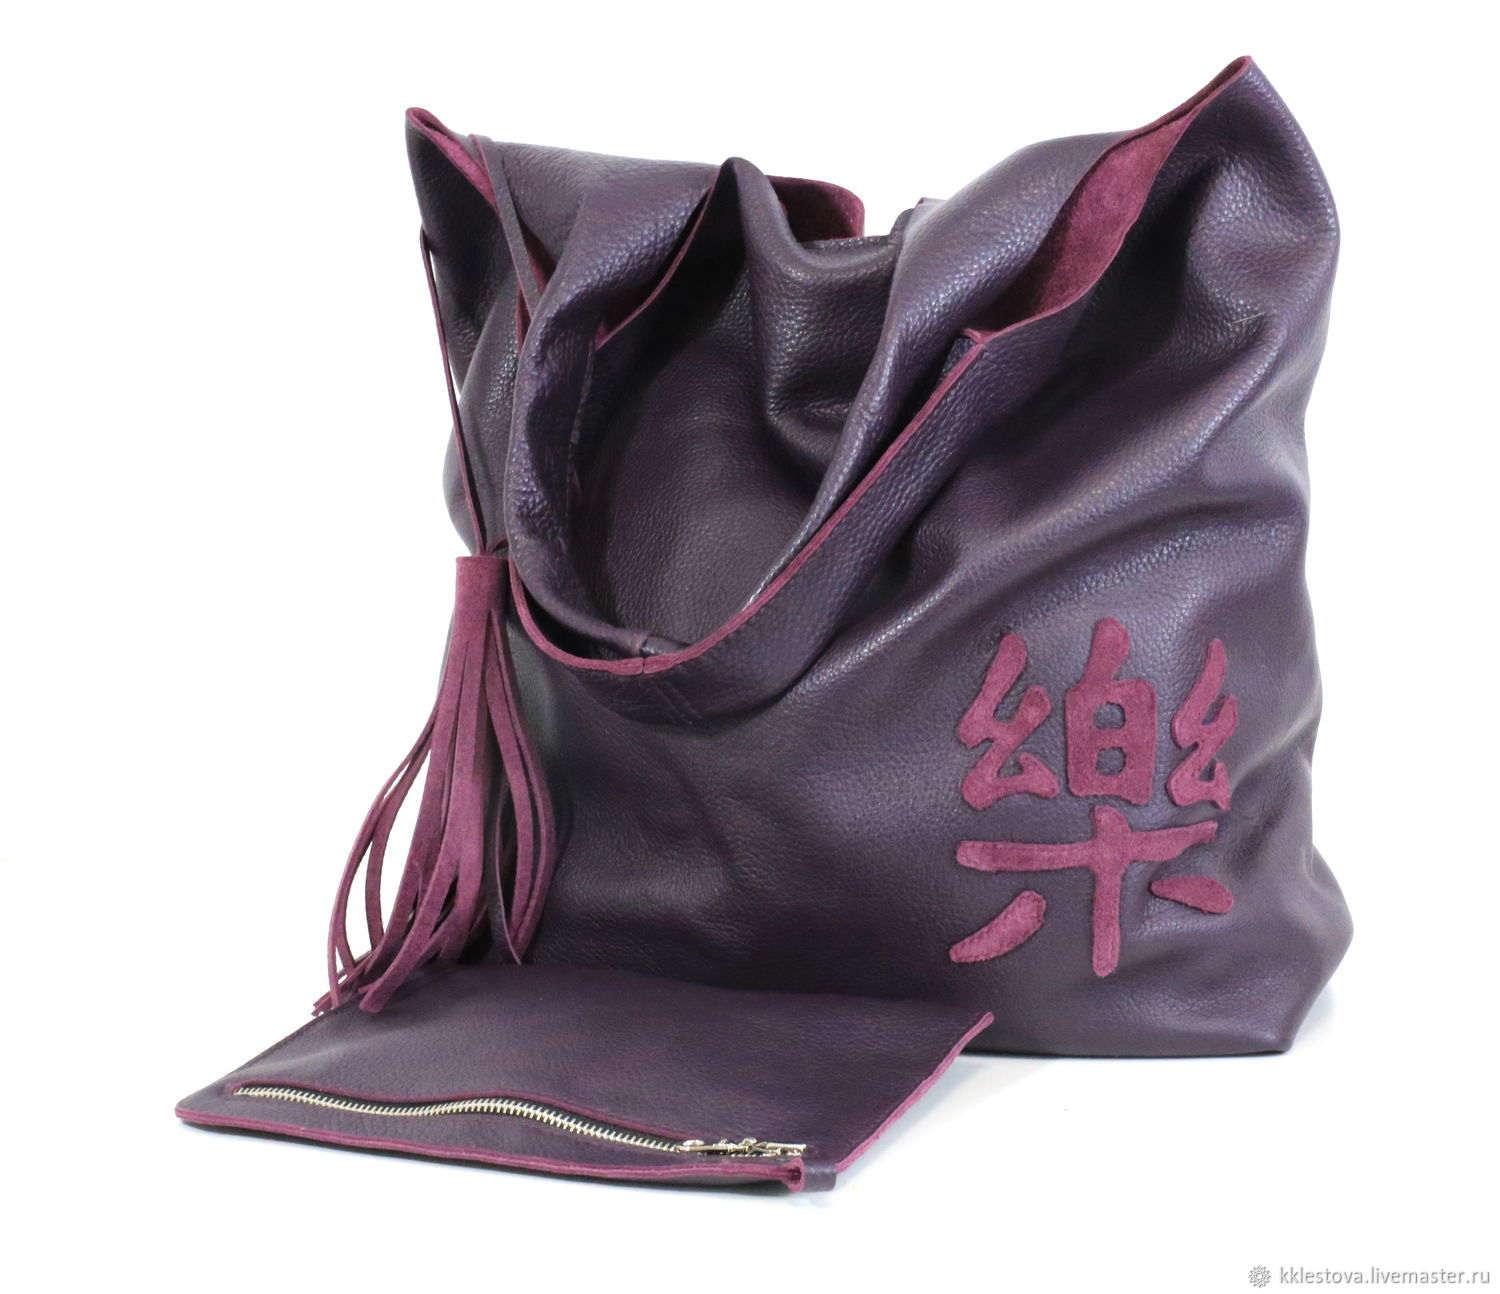 Bag - Bag Pack - large size with cosmetic bag and applique, Sacks, Moscow,  Фото №1